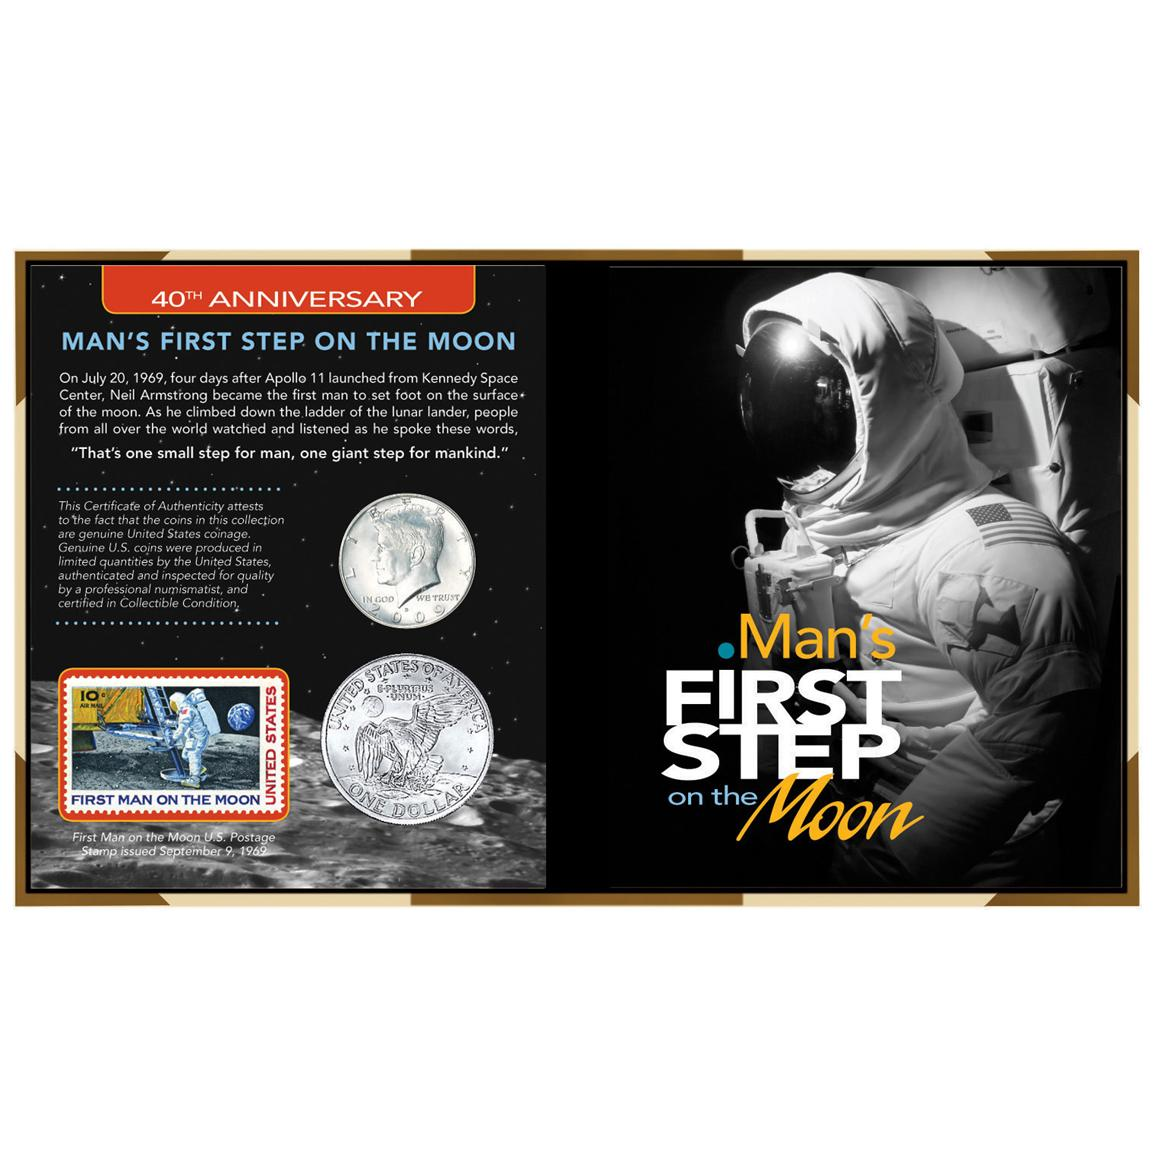 40th Anniversary Man's First Step on the Moon Coin and Stamp Display